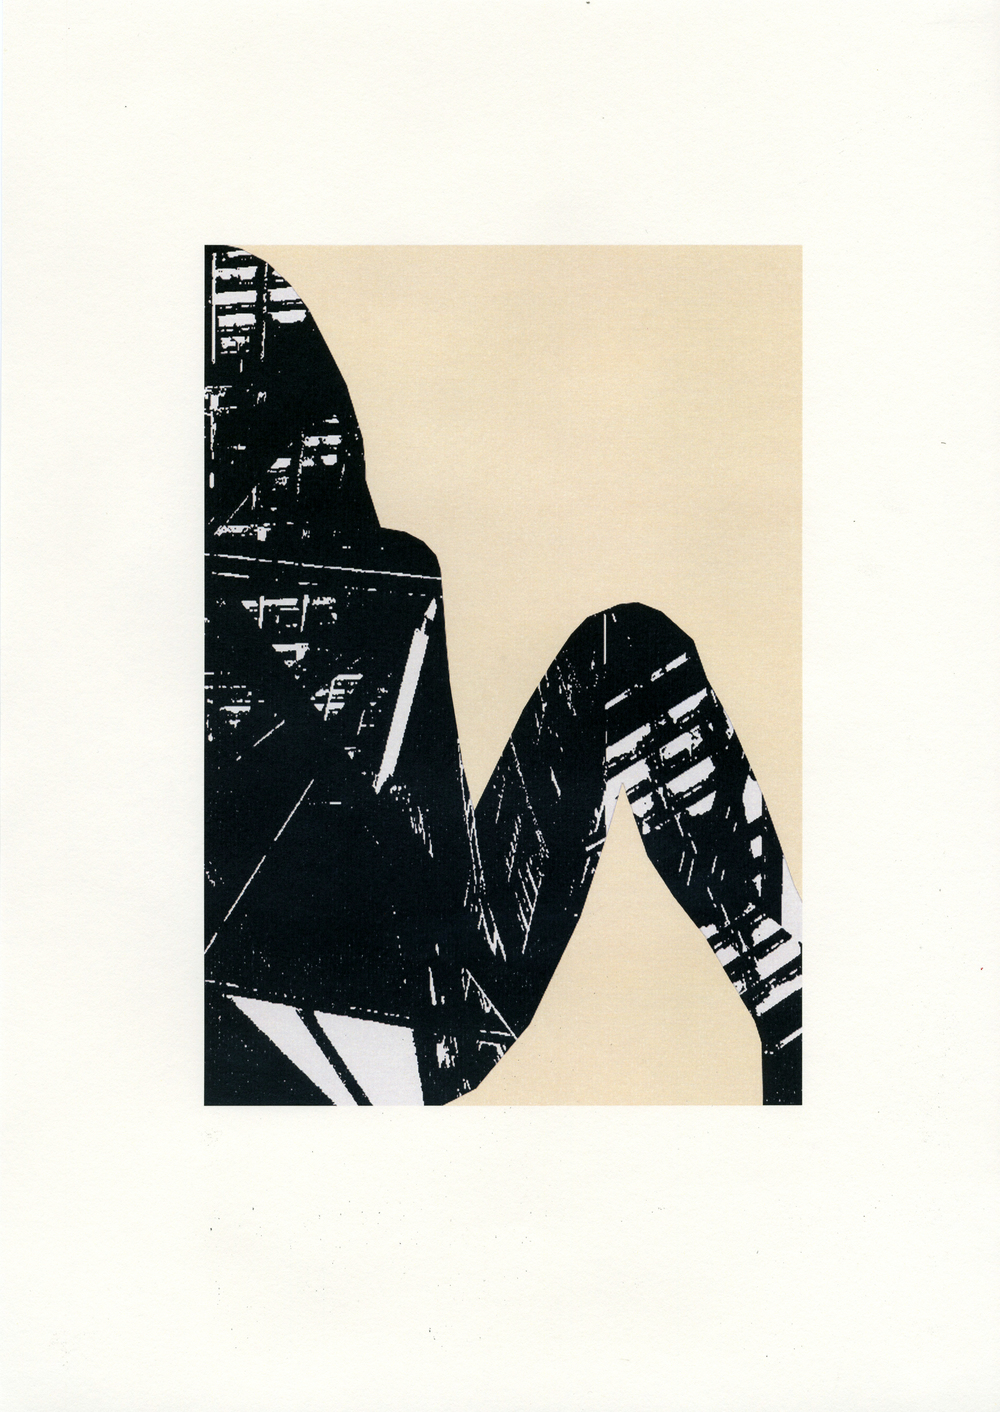 Adam and Eve Series, 2012/13, digital collage using monoprints printed on off-white cartridge paper, 29.5 x 42 cm